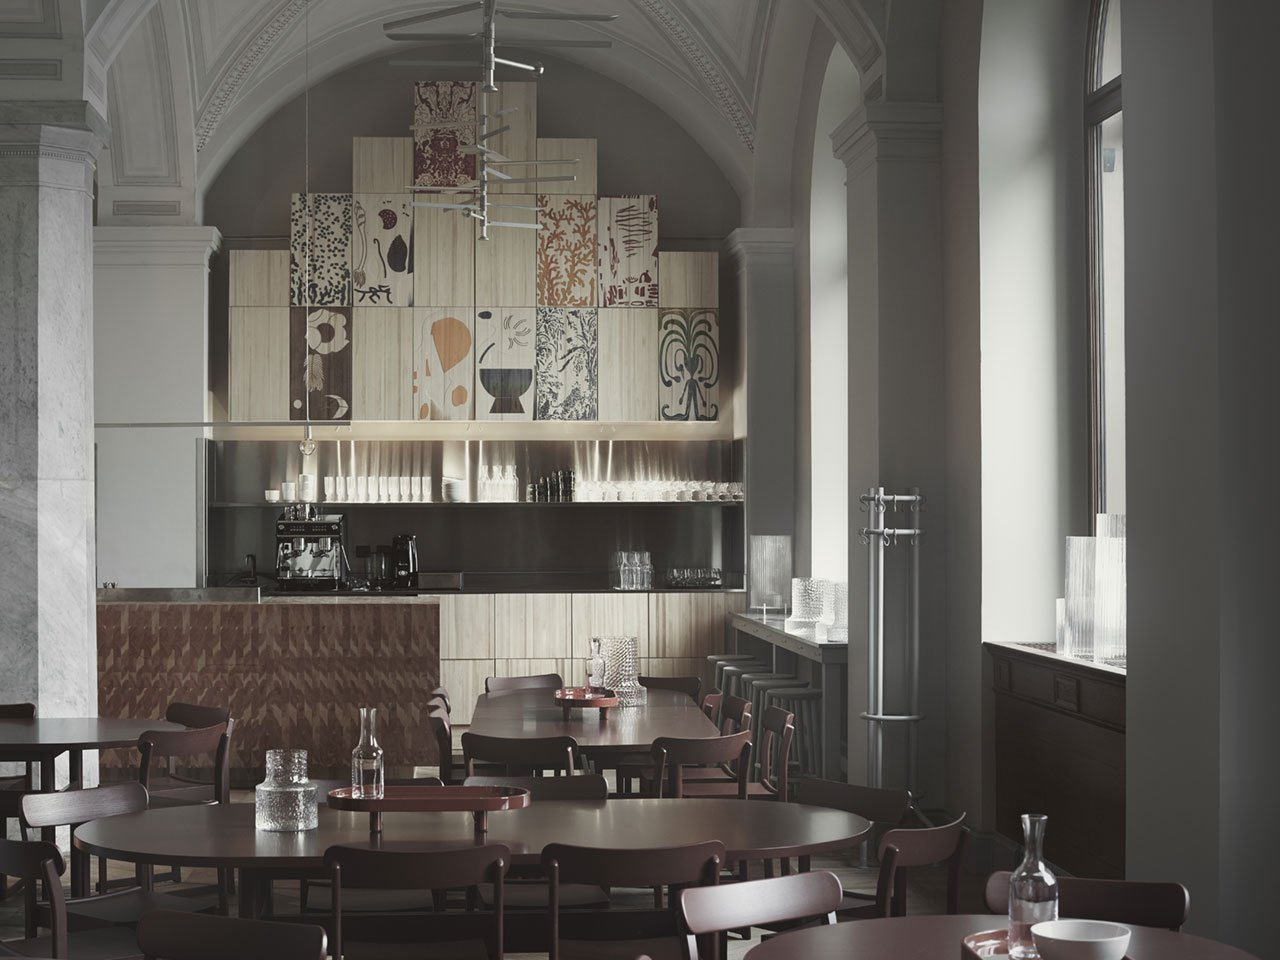 f4_nm_en_ny_samling_restaurant_nationalmuseum_stockholm_sweden_yatzer